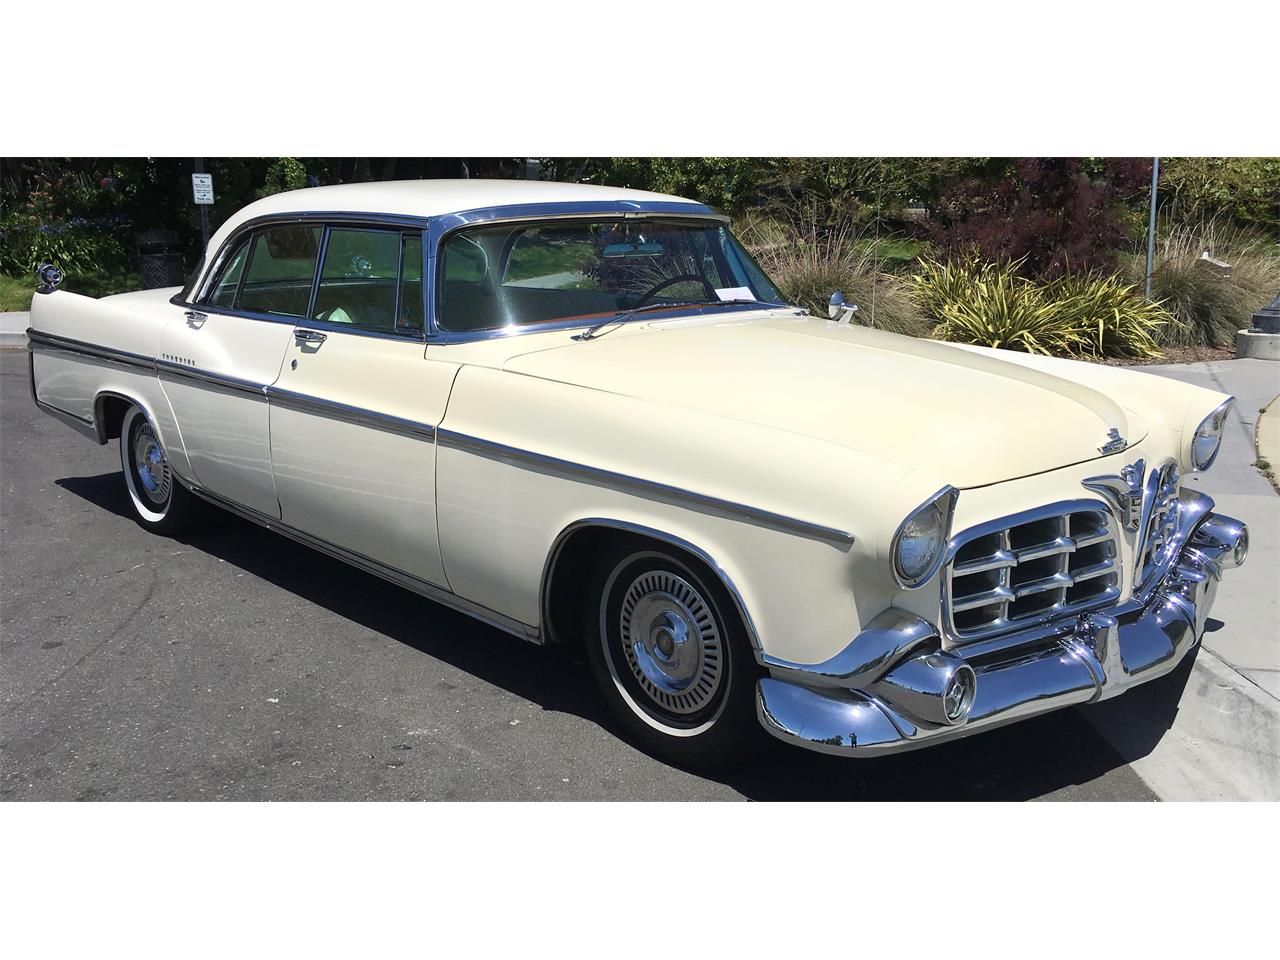 Large Picture of Classic '56 Chrysler Imperial South Hampton located in California Offered by Classic Cars West - NNZ0